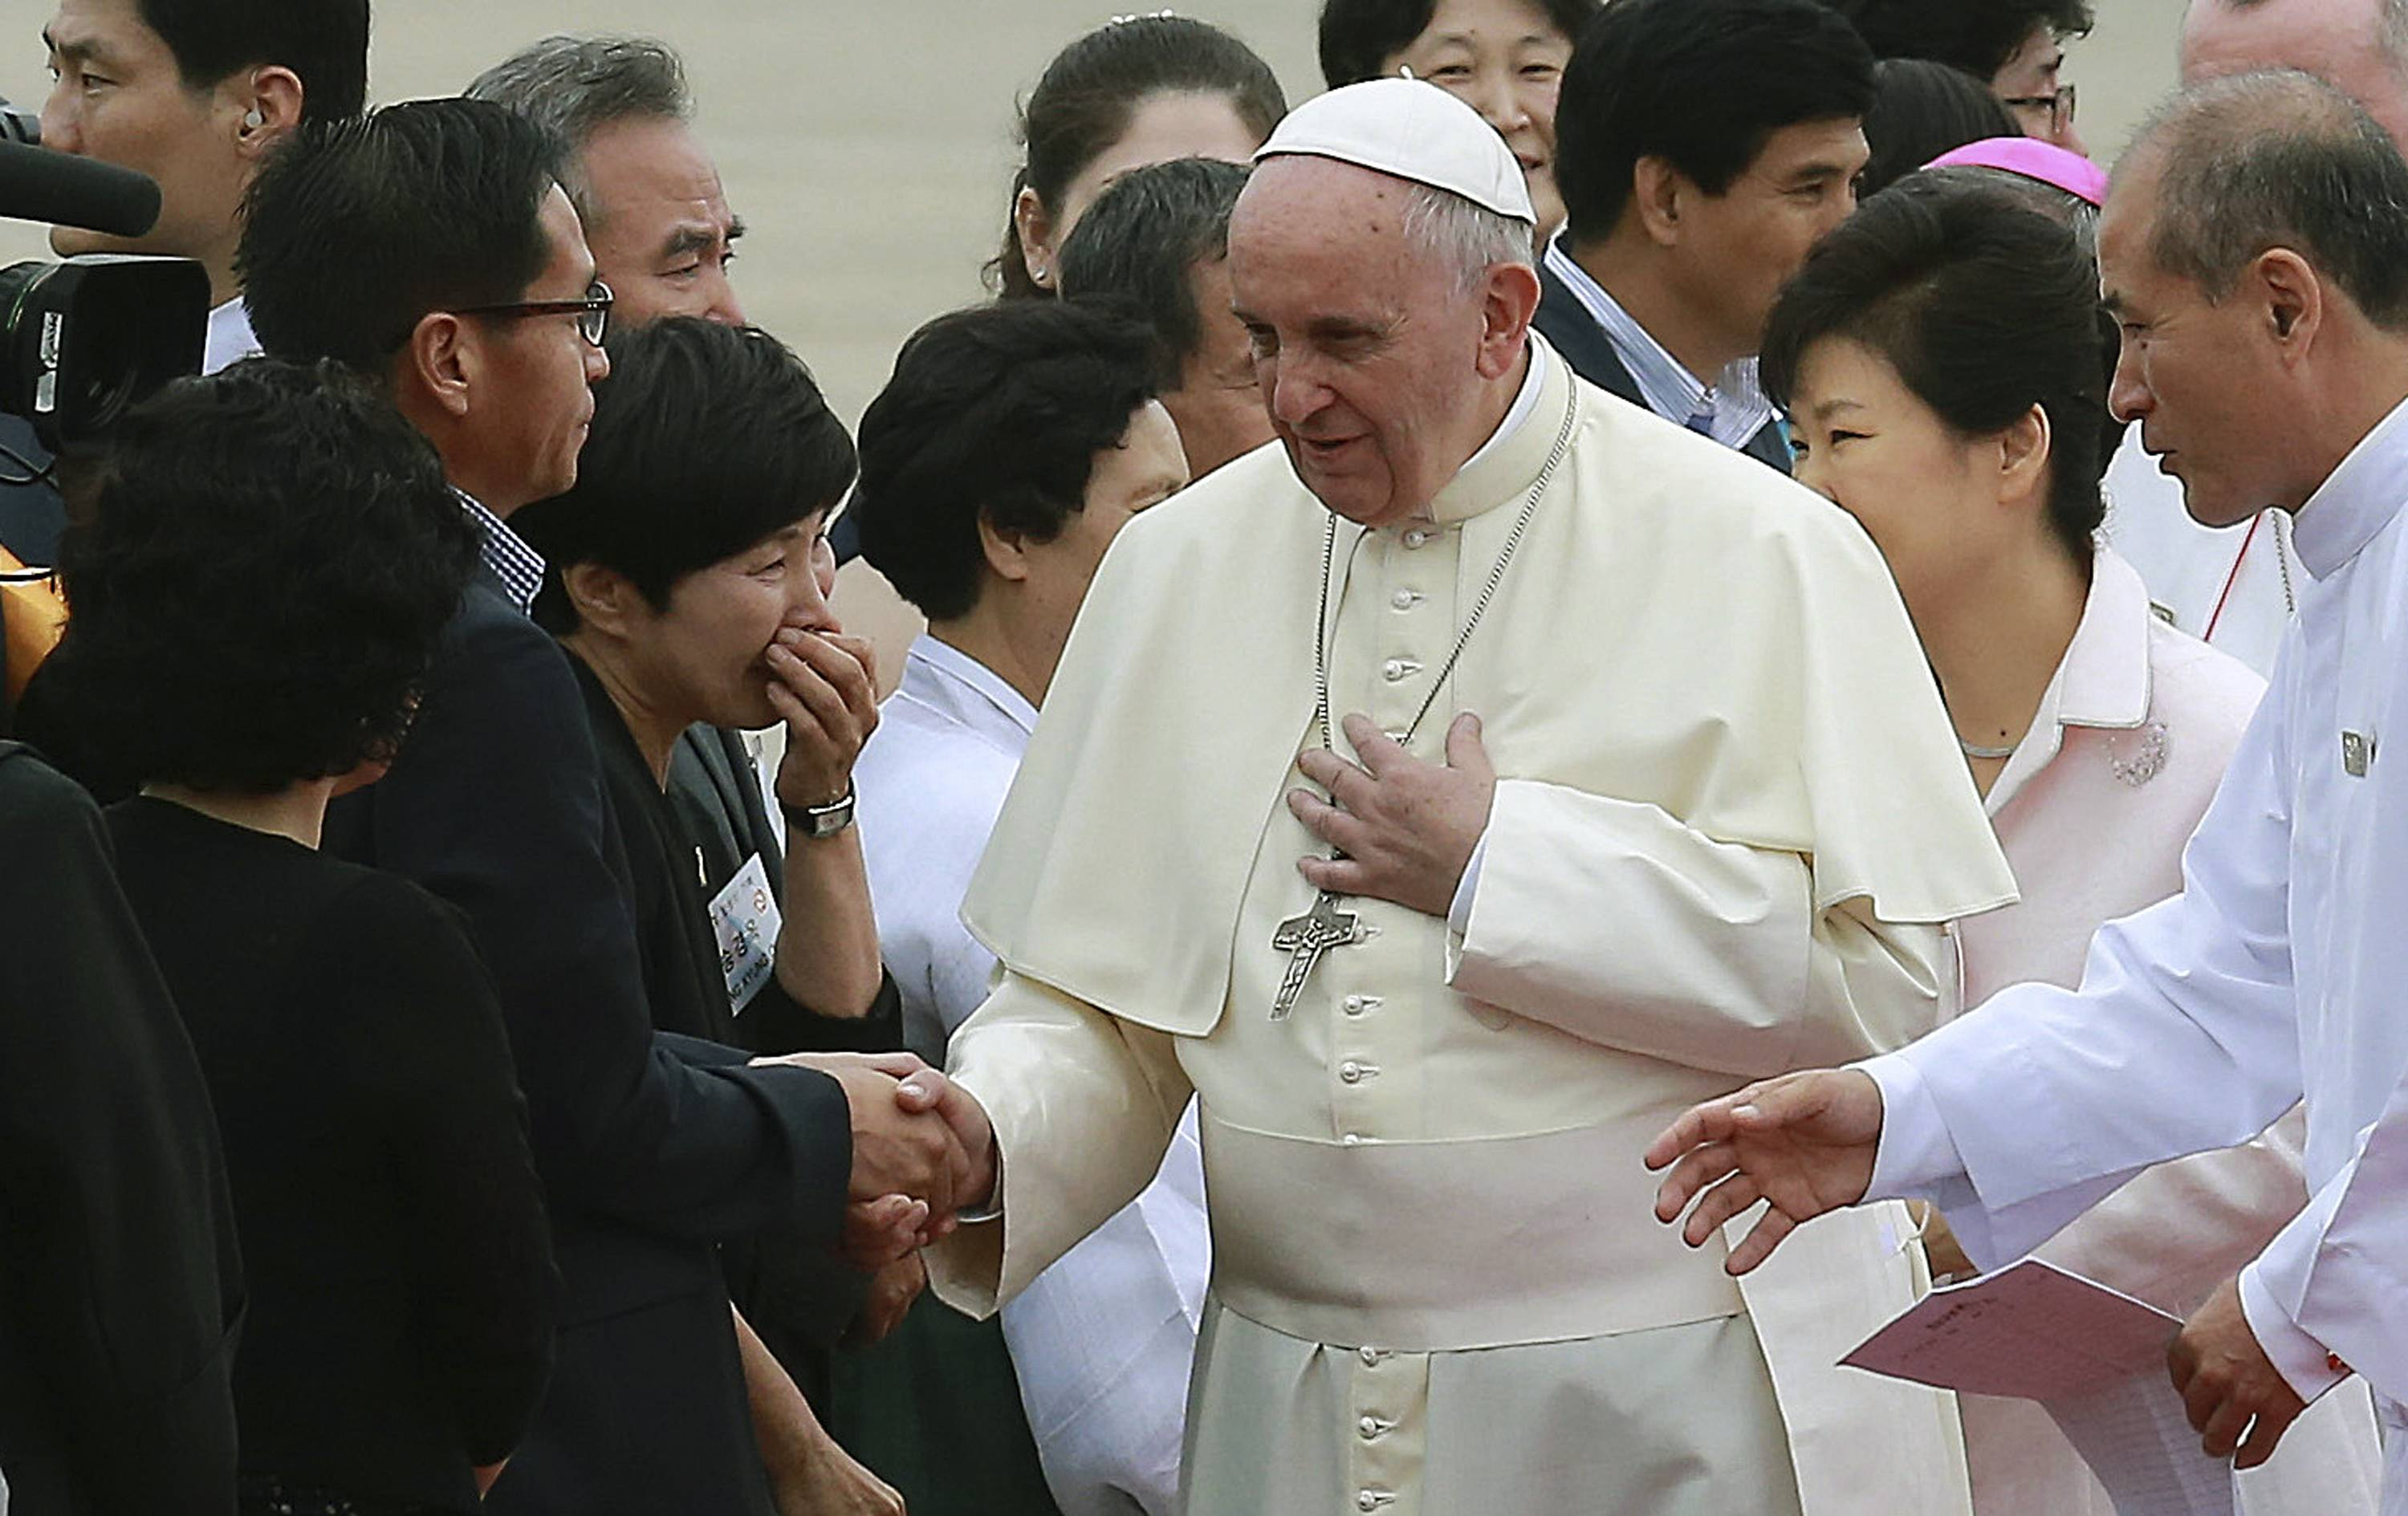 Pope Francis, center, shakes hands with a representatives of family members of victims onboard the sunken ferry Sewol upon his arrival at Seoul Air Base in Seongnam, South Korea, Thursday, Aug. 14, 2014.